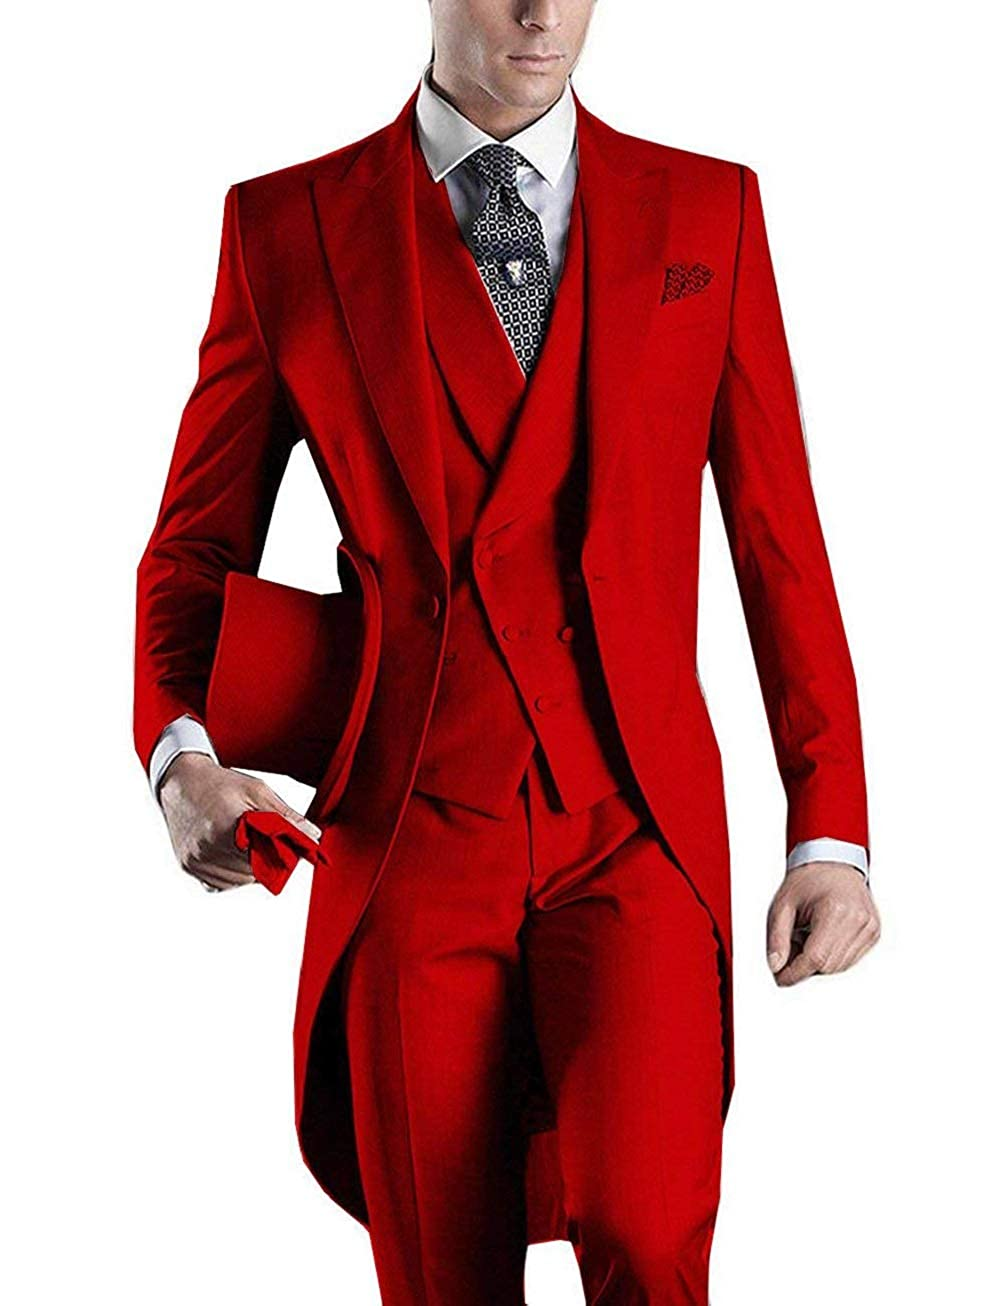 a25c3496f846 DGMJ Mens Suits Slim Fit 3 Piece Formal Wedding Attire Tuxedo Mens Retro  Tailcoats Outfit for Party XZ019 at Amazon Men's Clothing store: